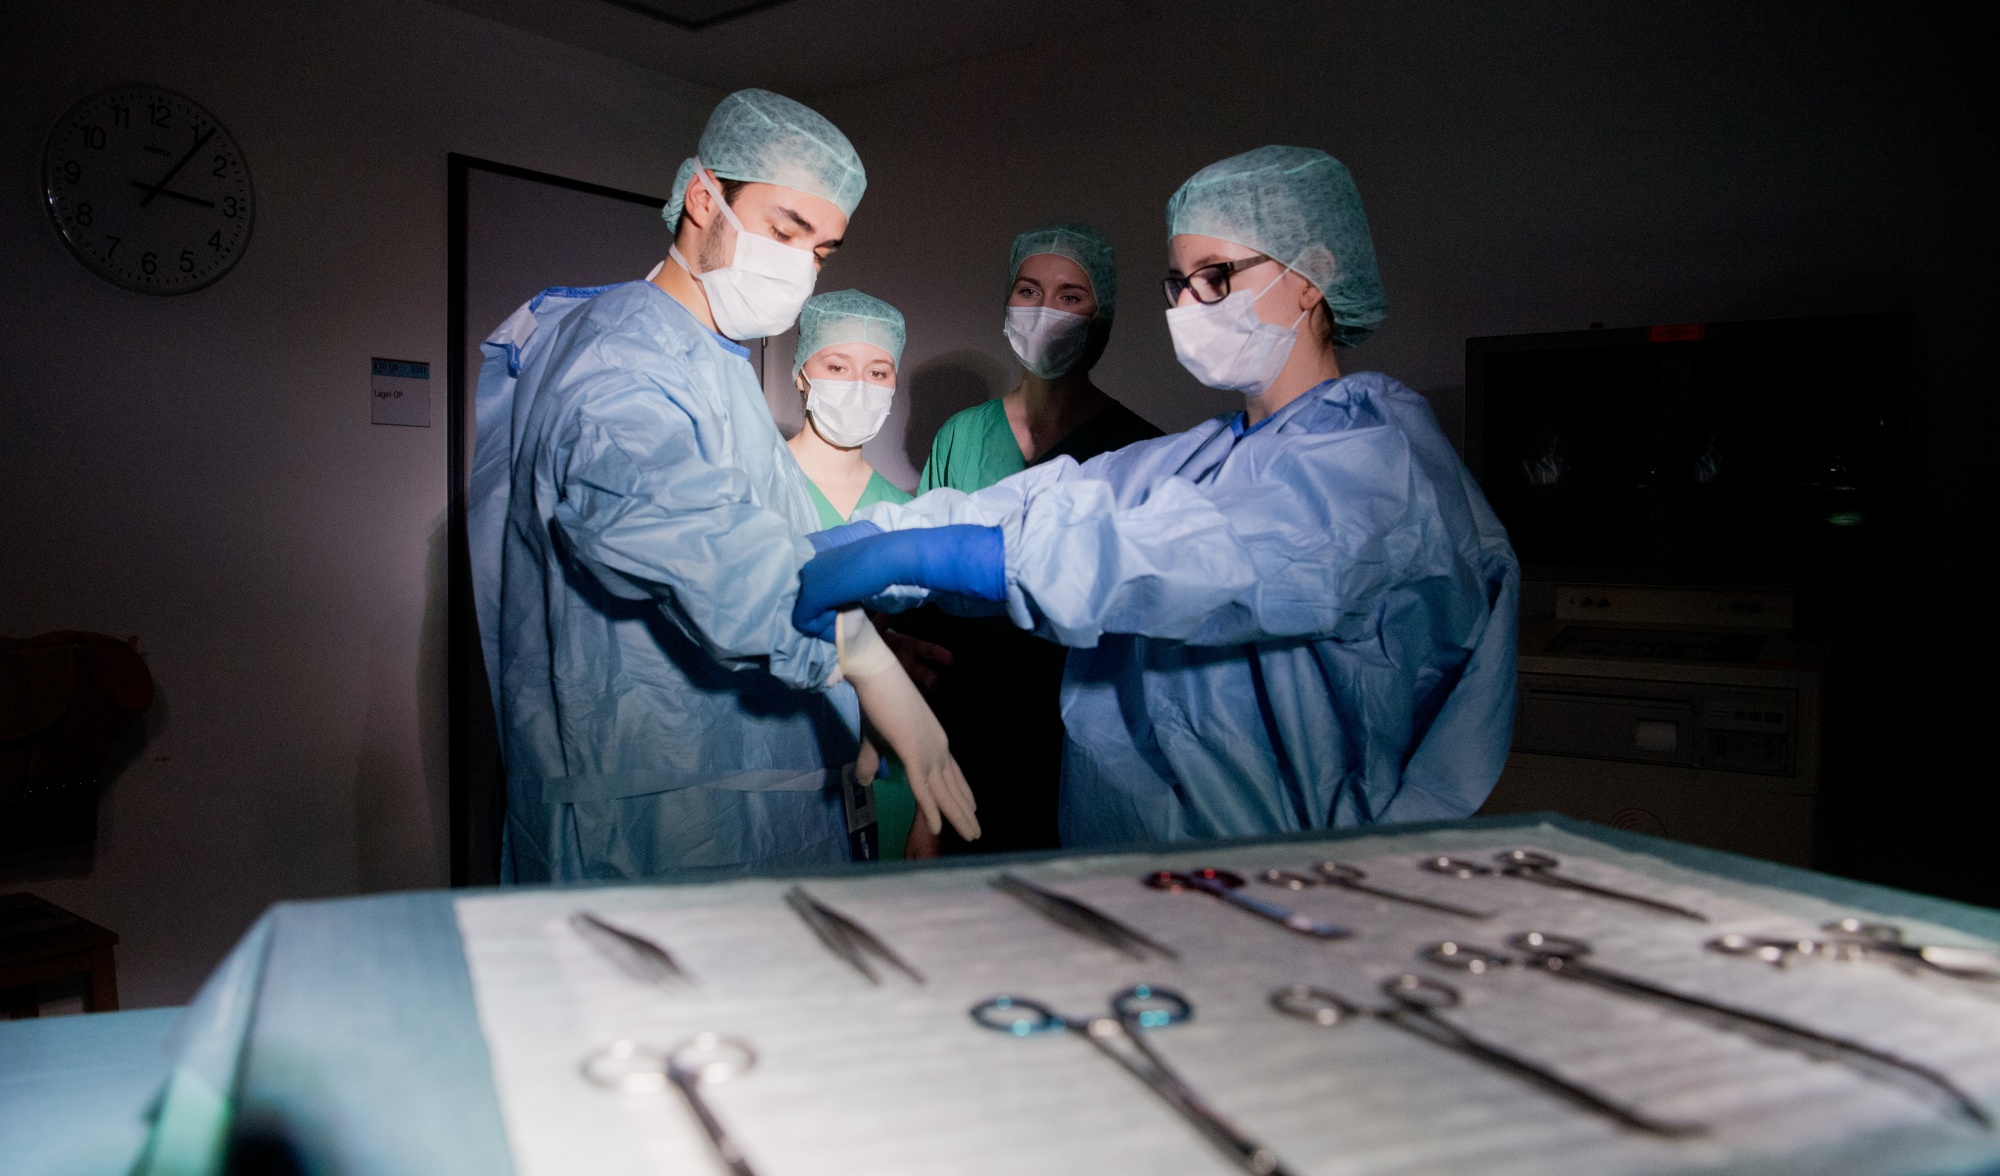 Coronavirus Why Surgeons Don T Want To Operate Right Now Bloomberg